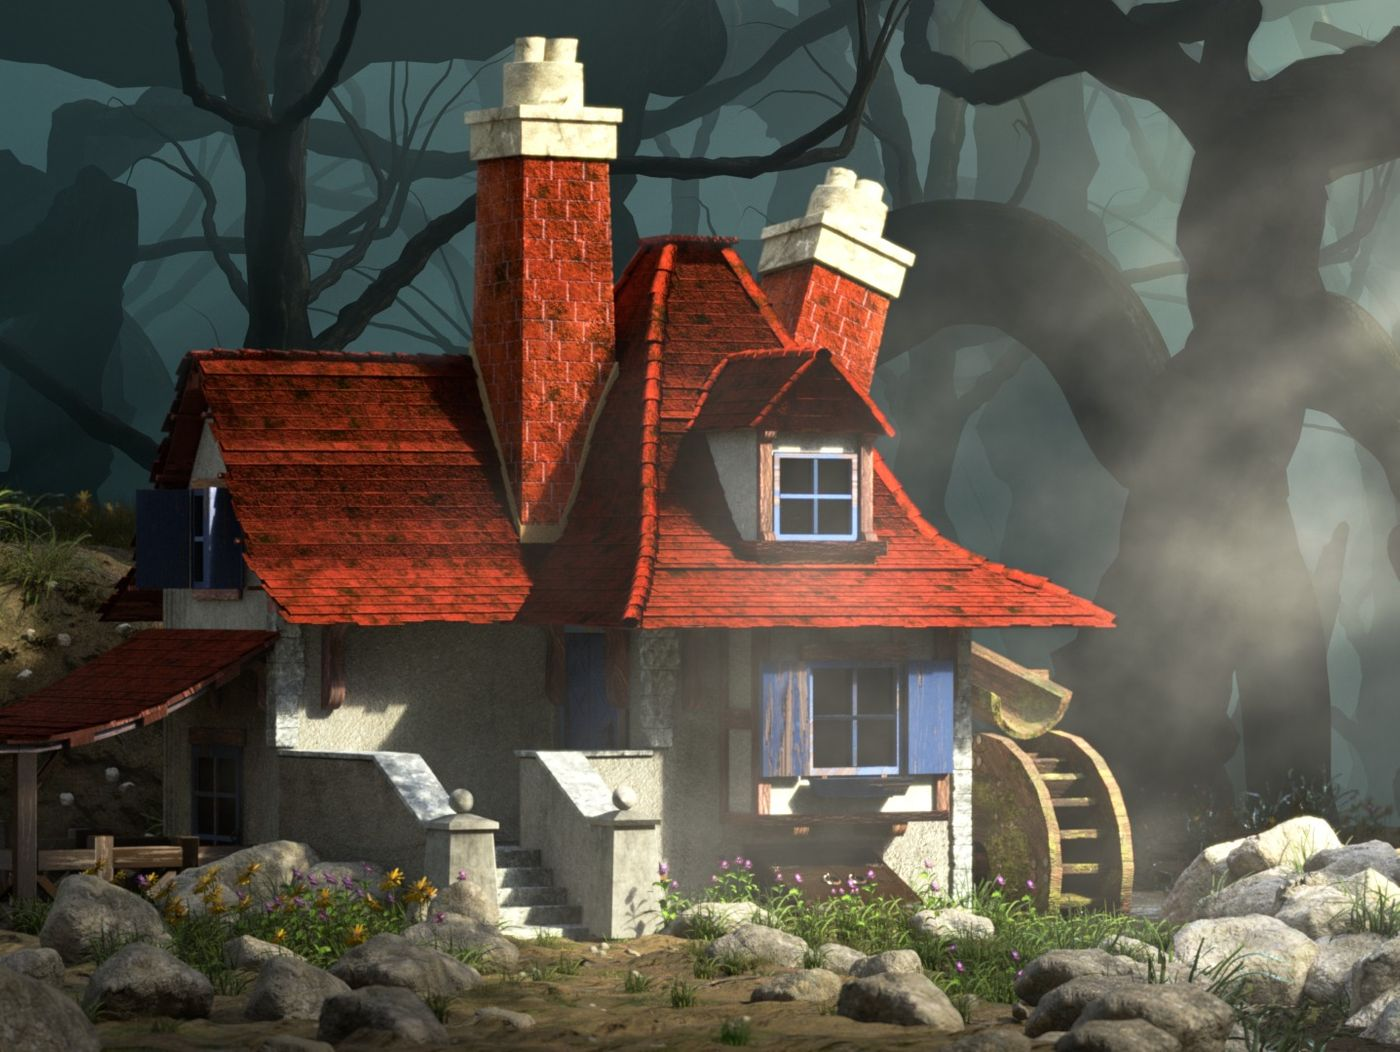 The Little House in the Dark Forest